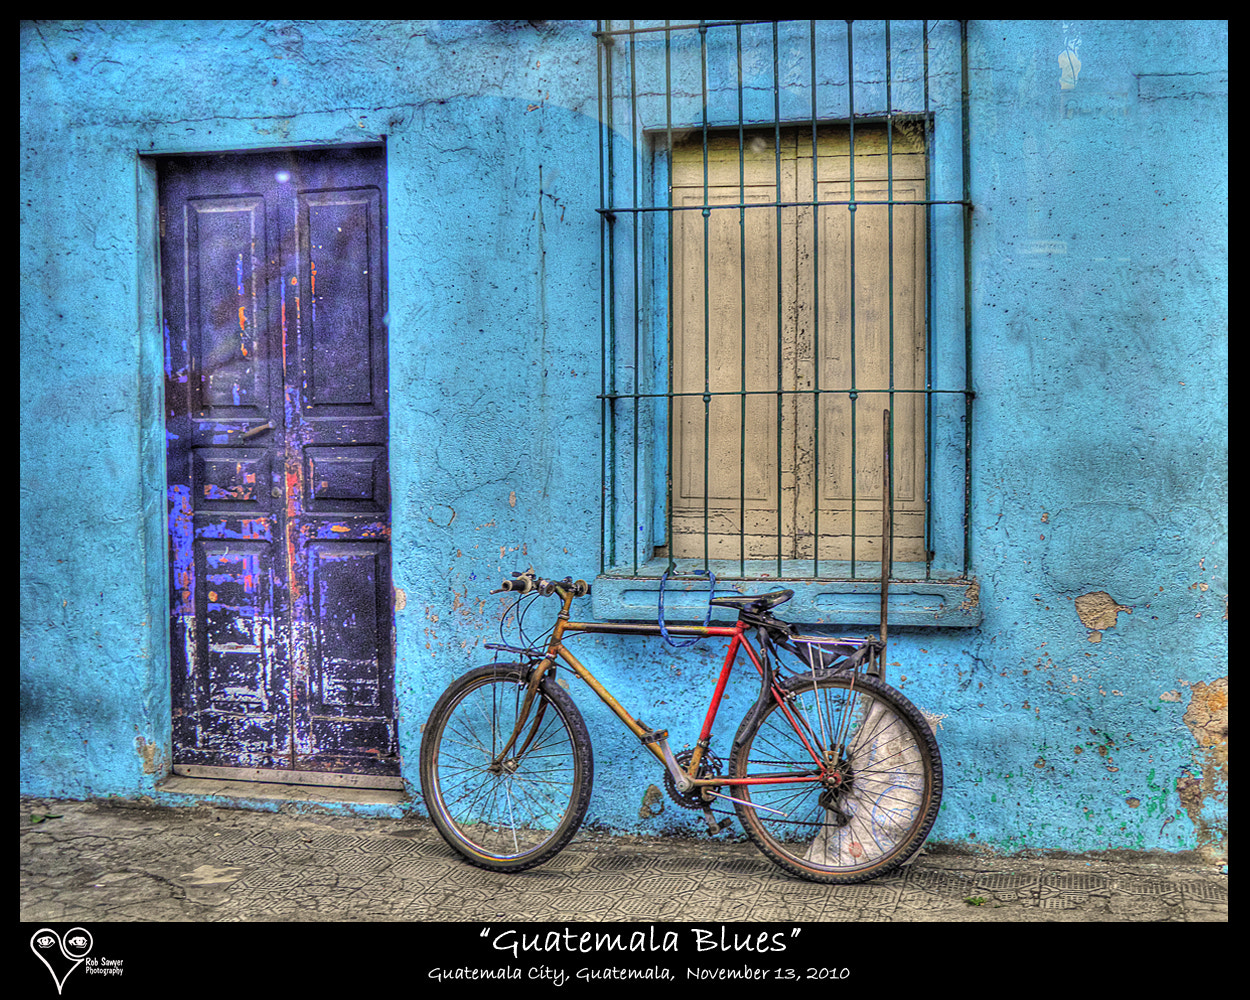 Photograph Guatemala Blues by Rob Sawyer on 500px